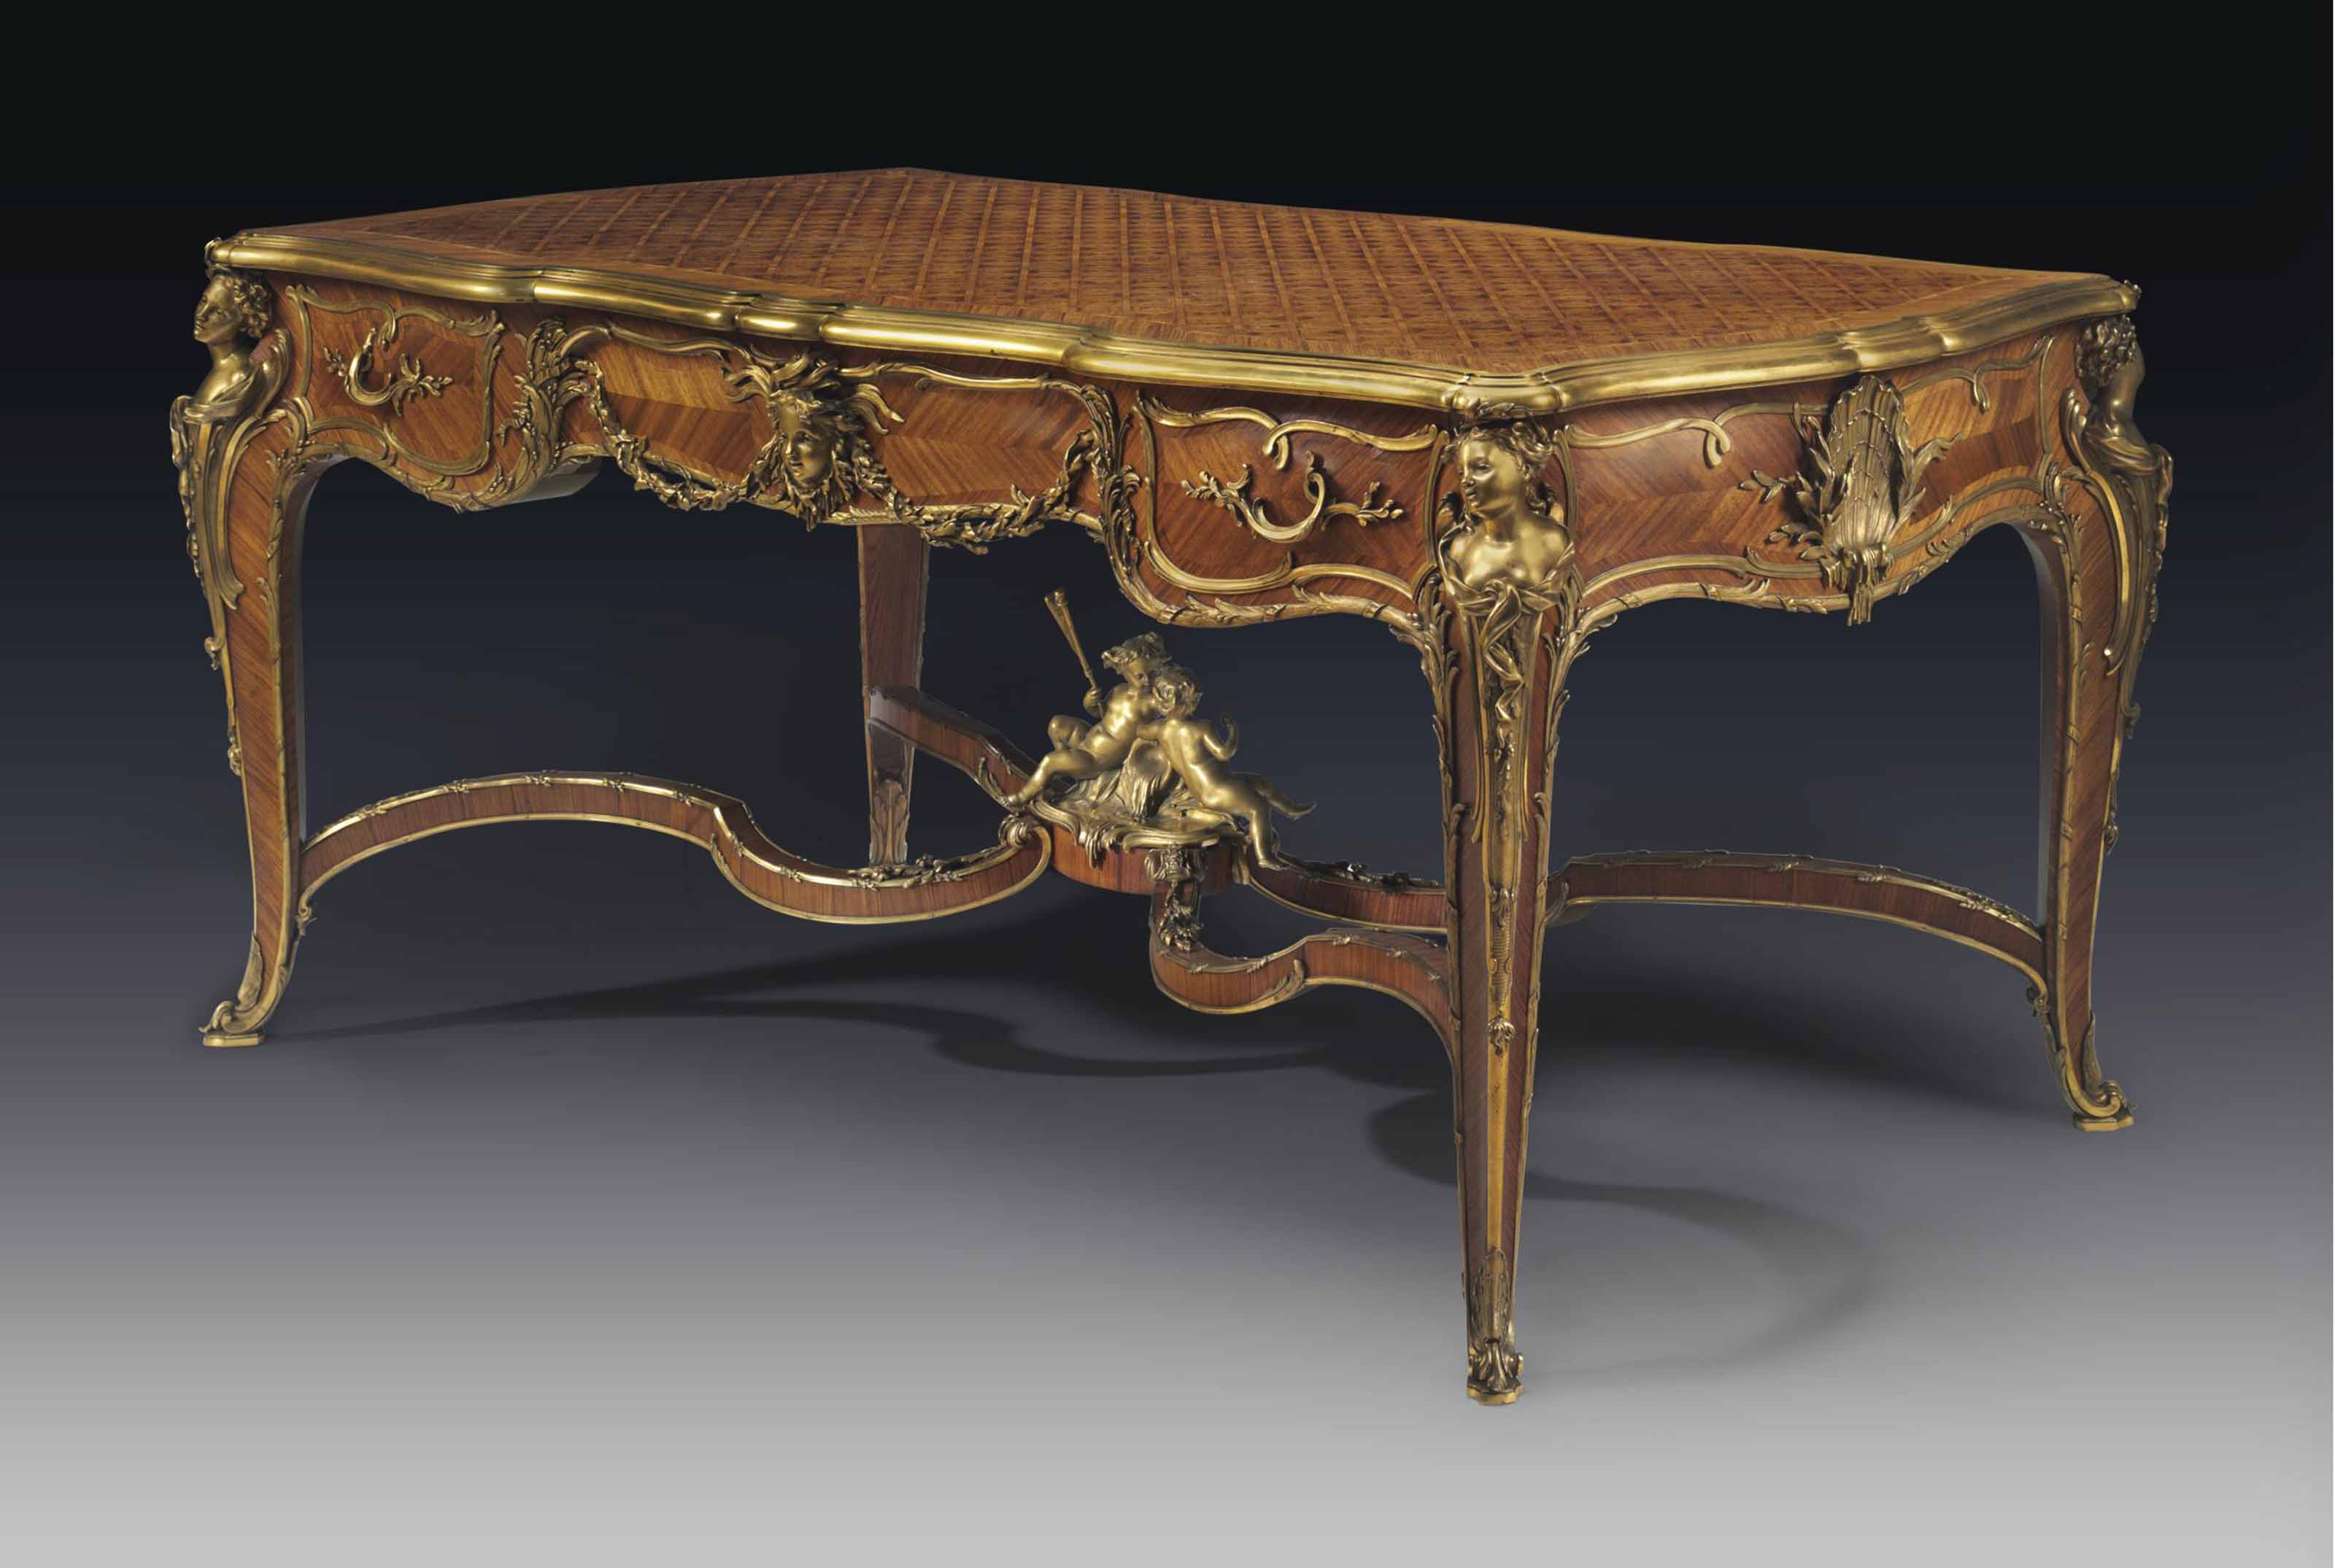 A FINE FRENCH ORMOLU-MOUNTED KINGWOOD AND SATINE PARQUETRY CENTER-TABLE